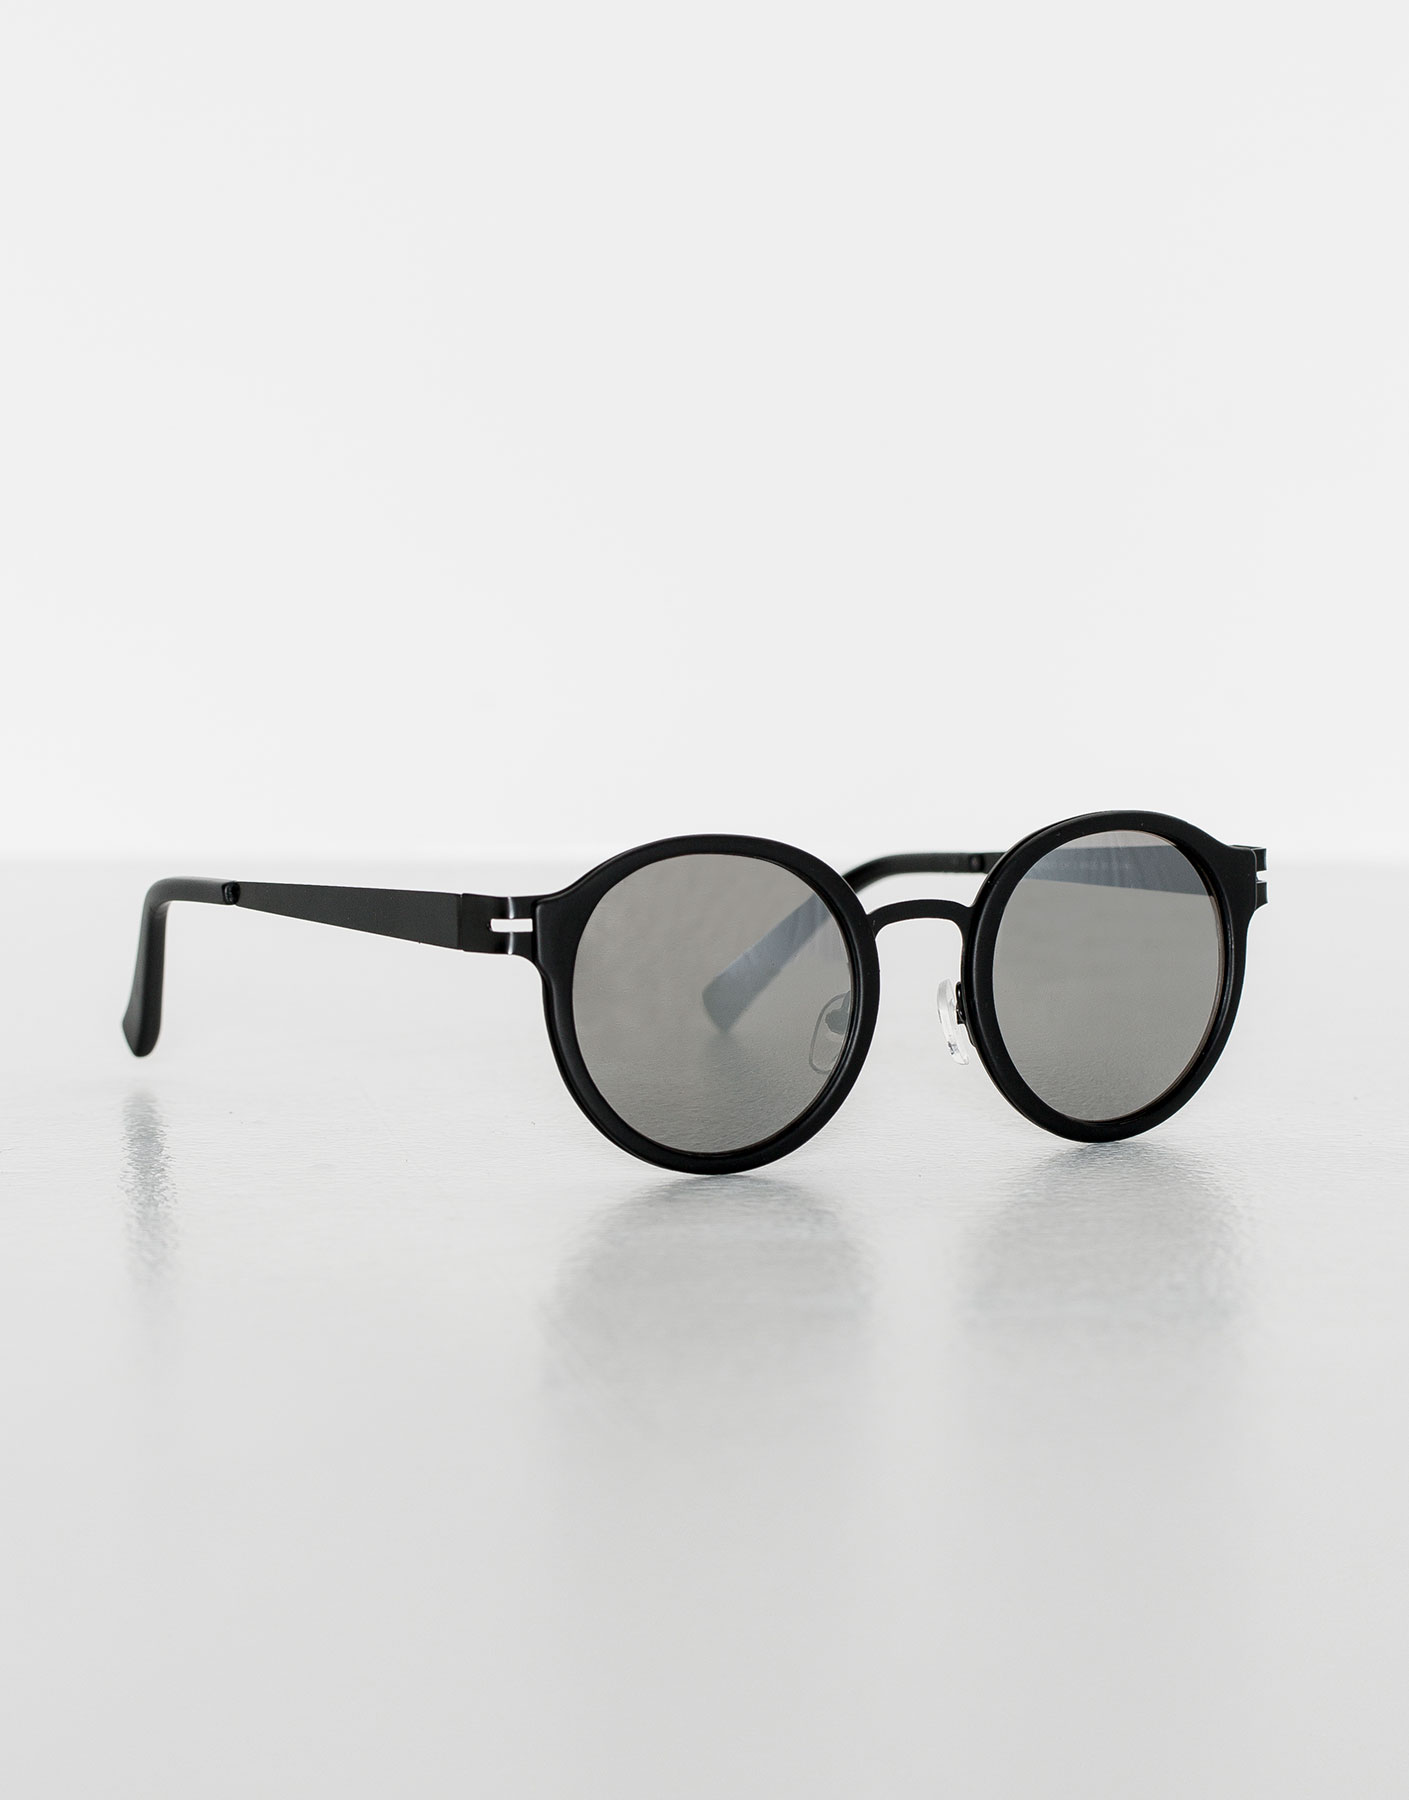 Rounded mirrored sunglasses